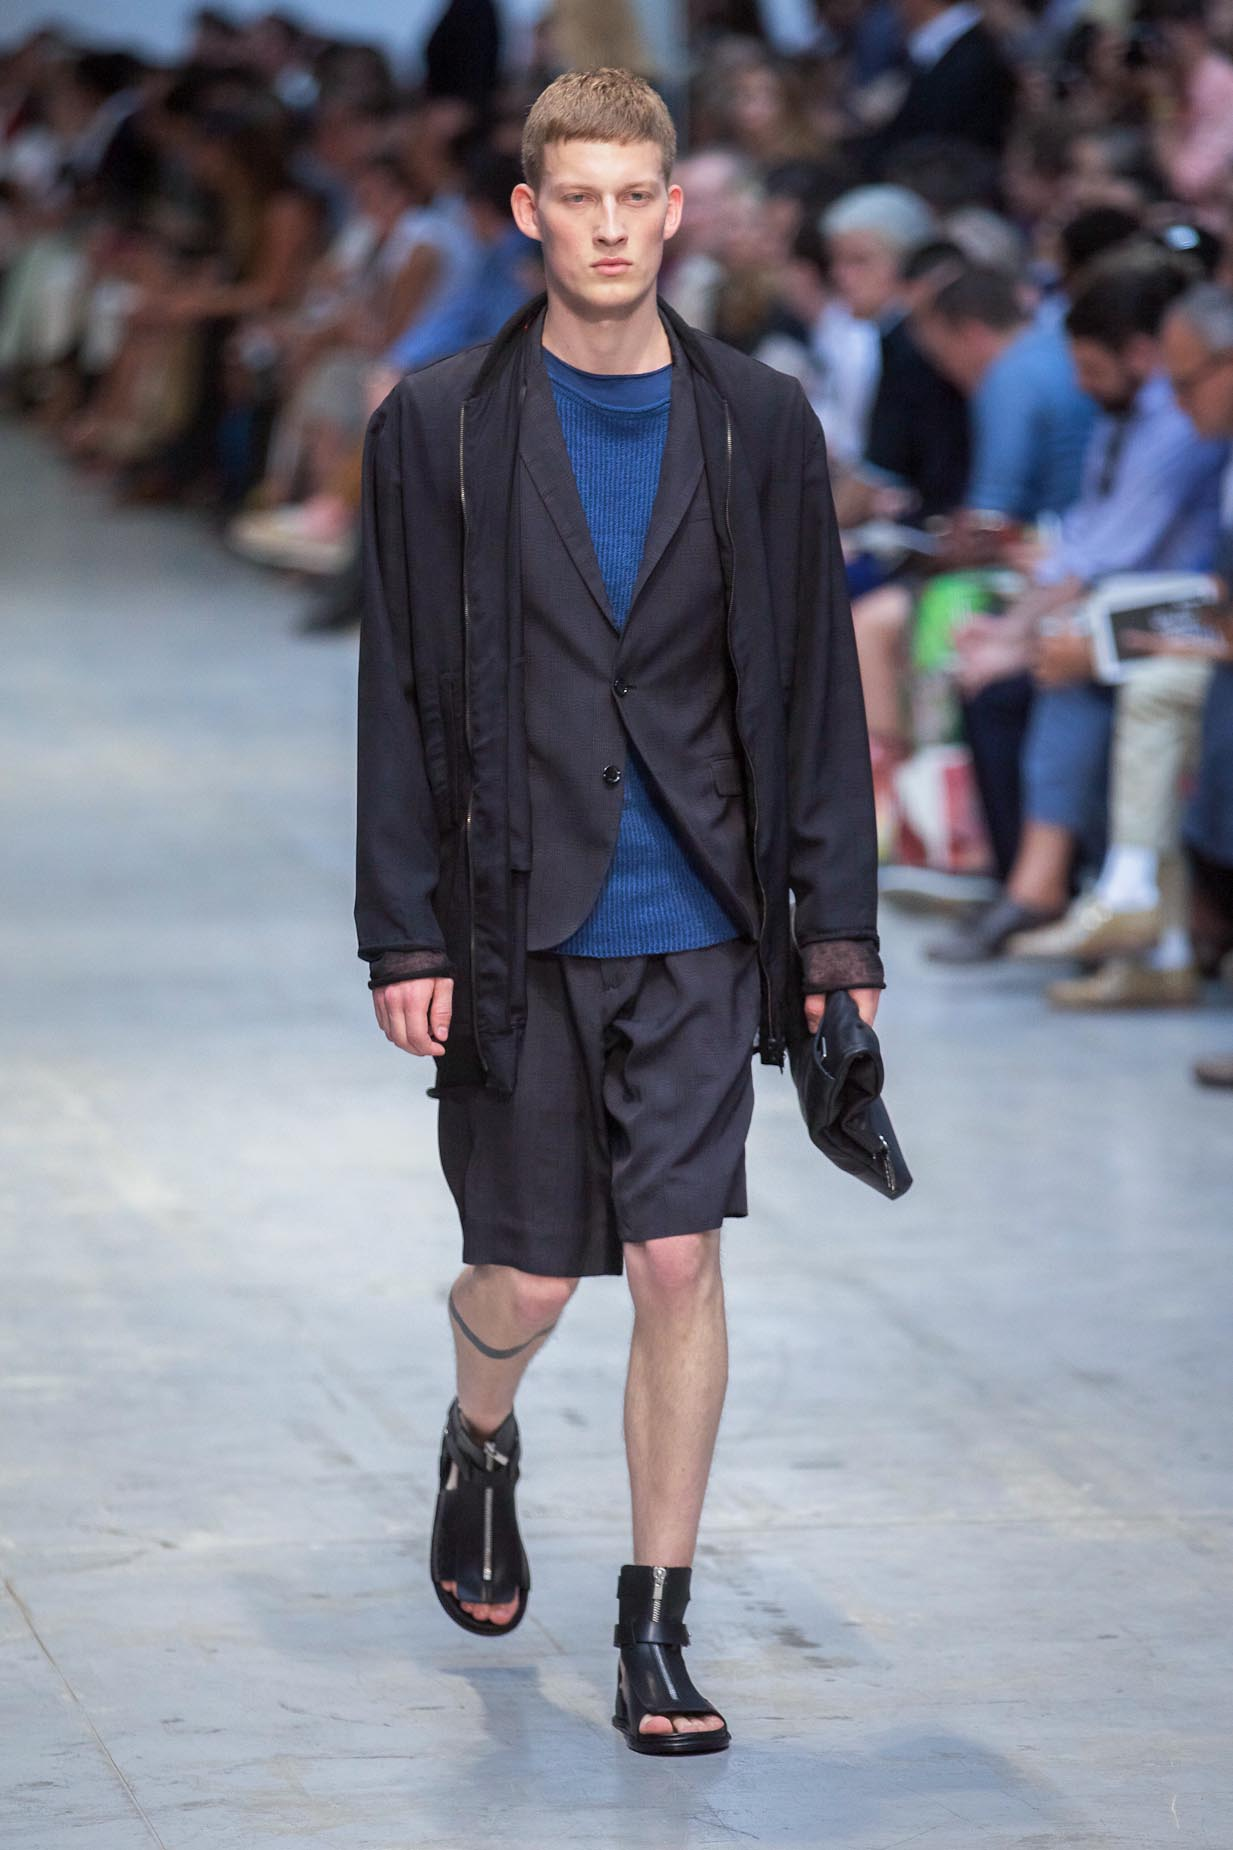 Men Fashion Show Hd Spring Men Fashion Show